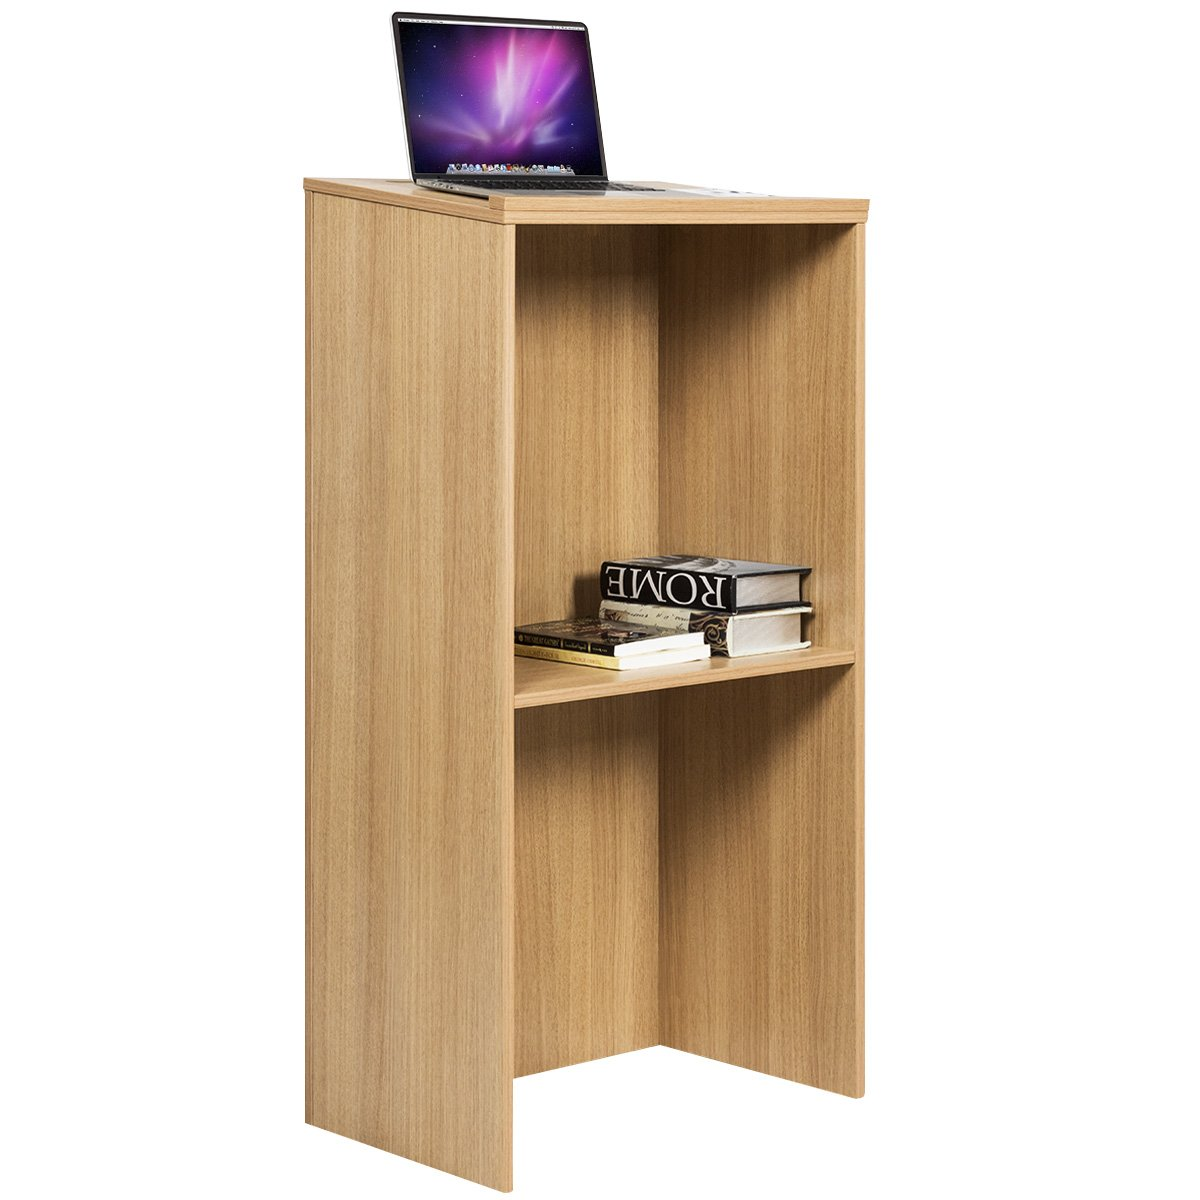 Tangkula Lectern Floor Standing Wood with Shelf Pencil Slot Stand Up Desk Podium (Natural Wood)